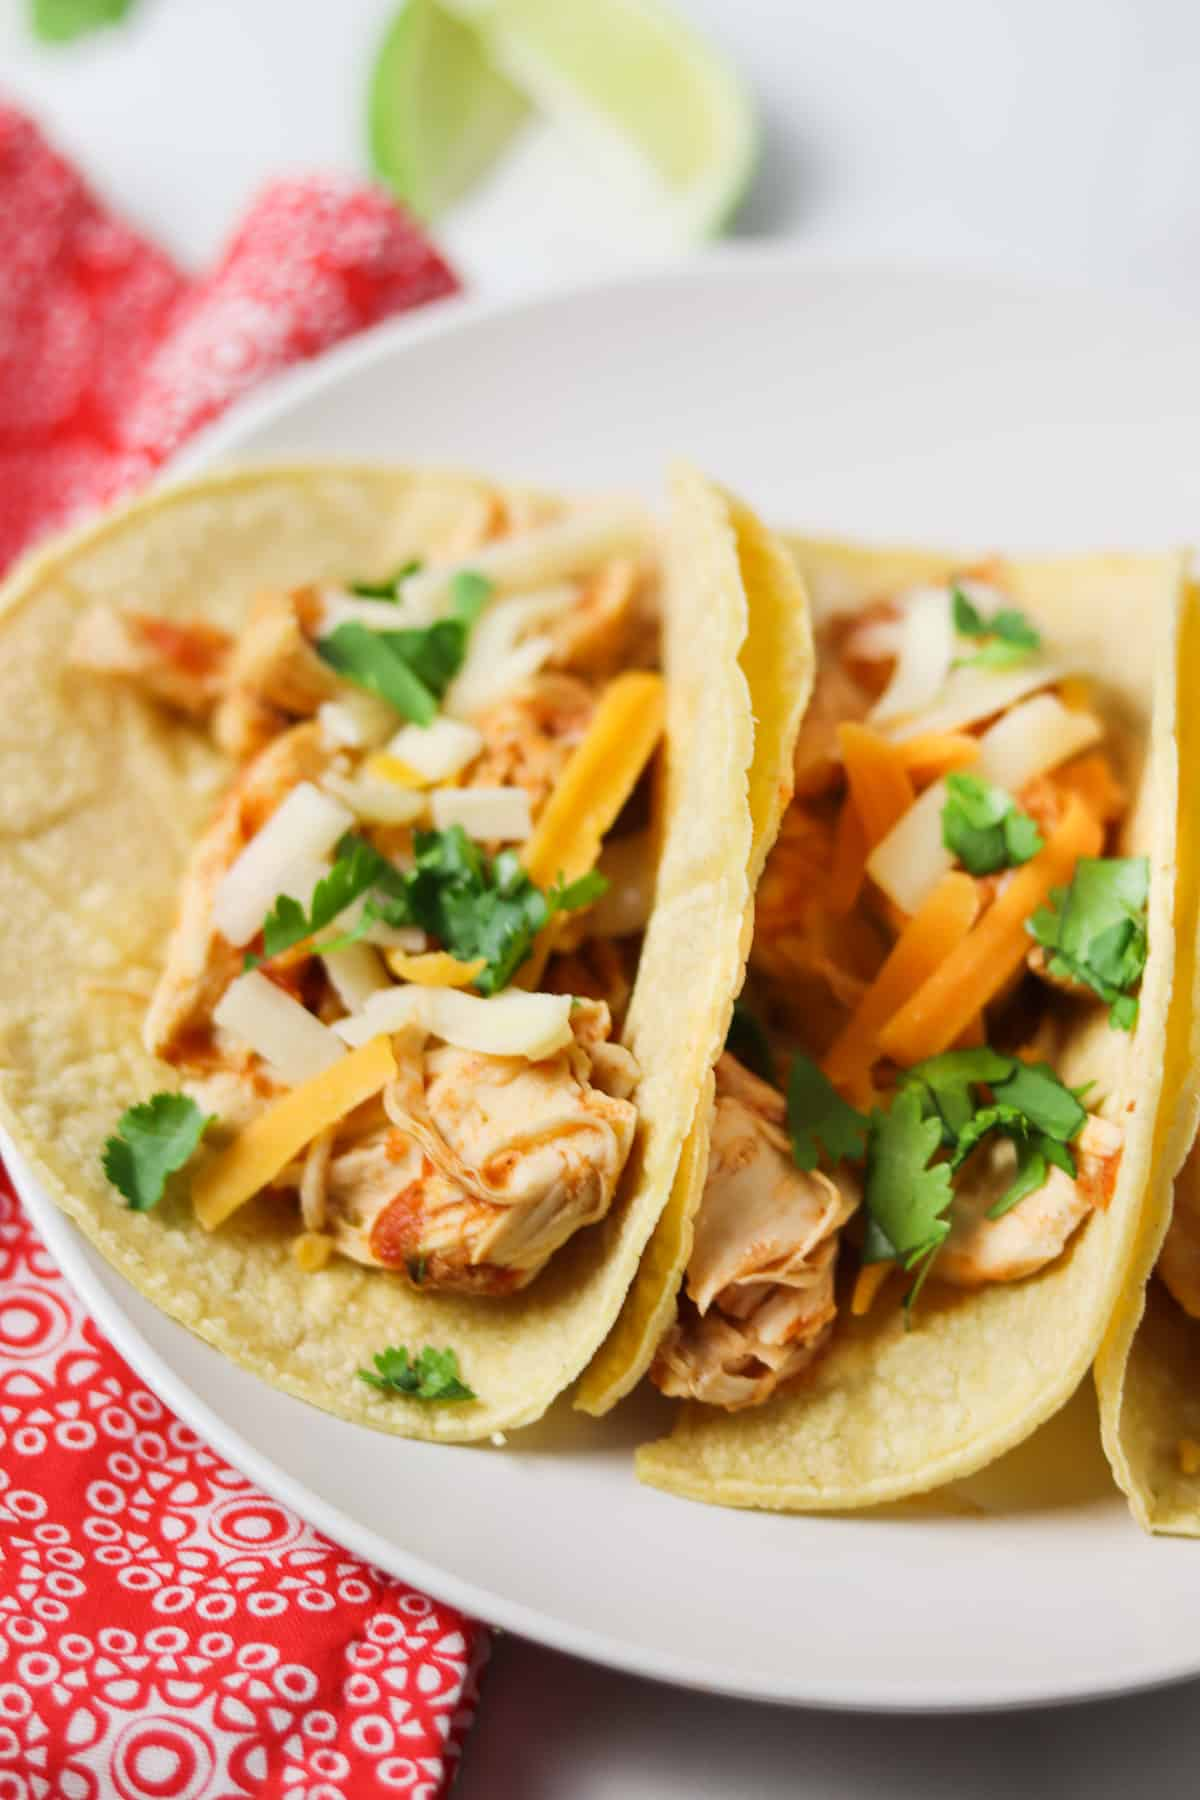 instant pot shredded chicken tacos on white plate with red napkin and limes